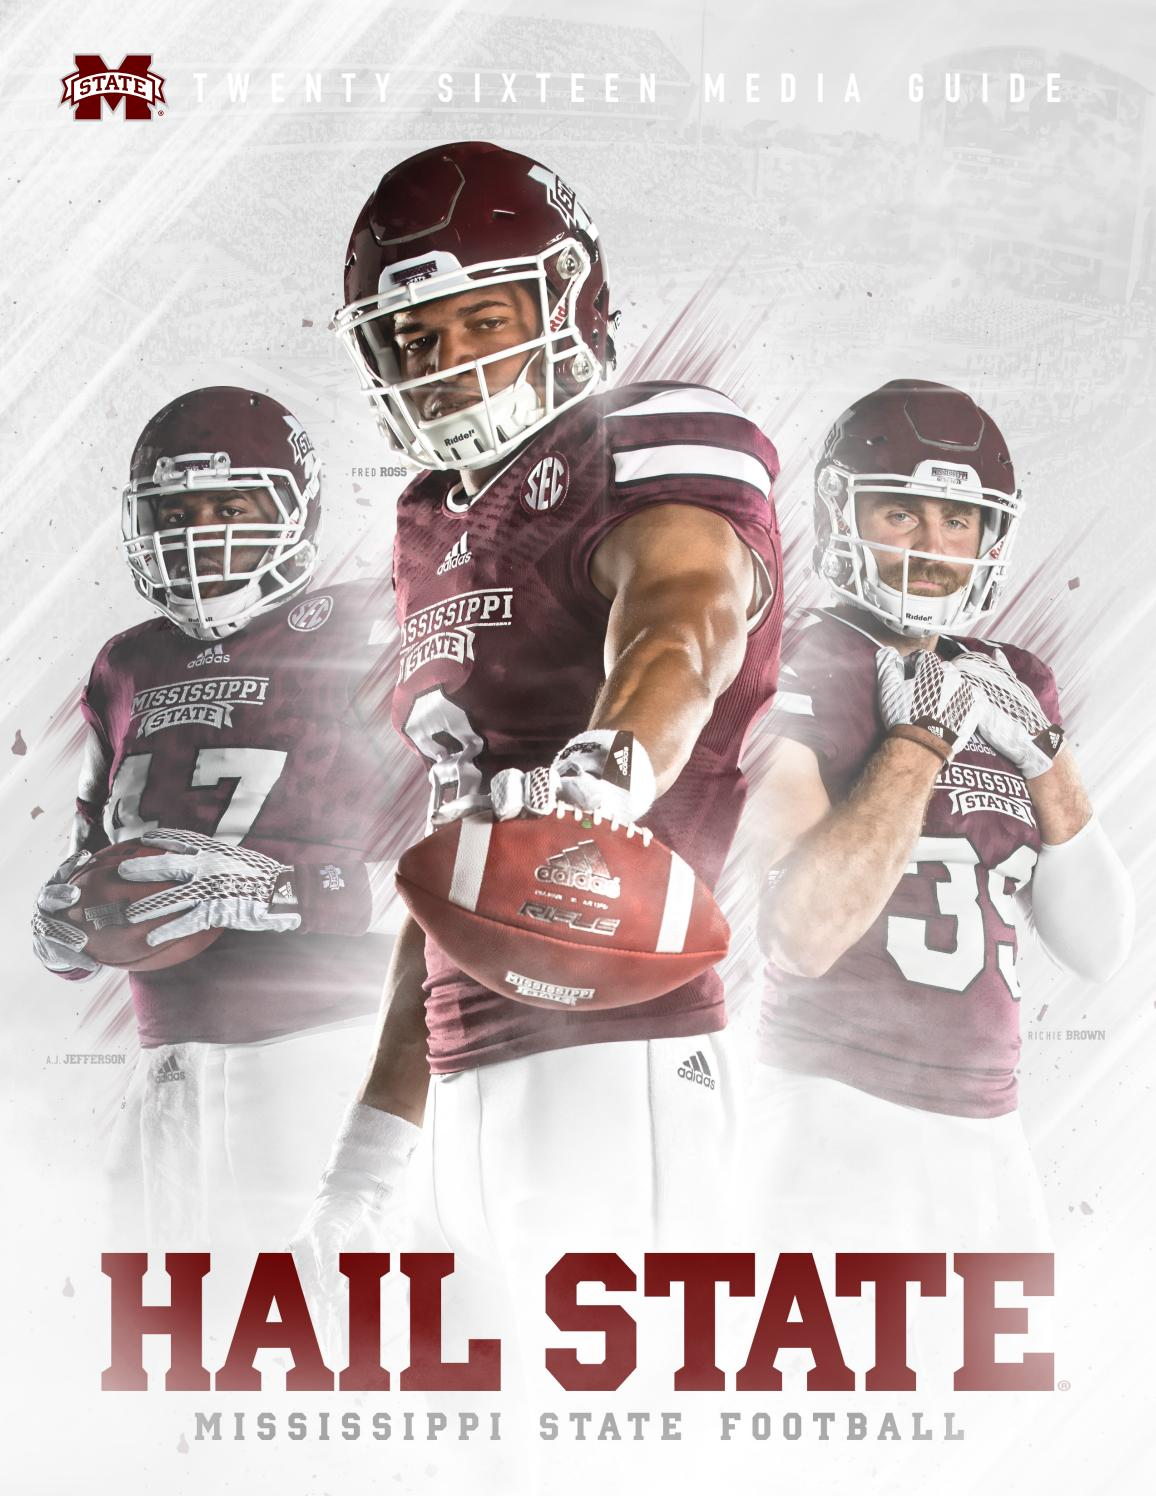 faa1dfc7374d2 2016 Mississippi State Football Media Guide by Mississippi State University  Athletics - issuu